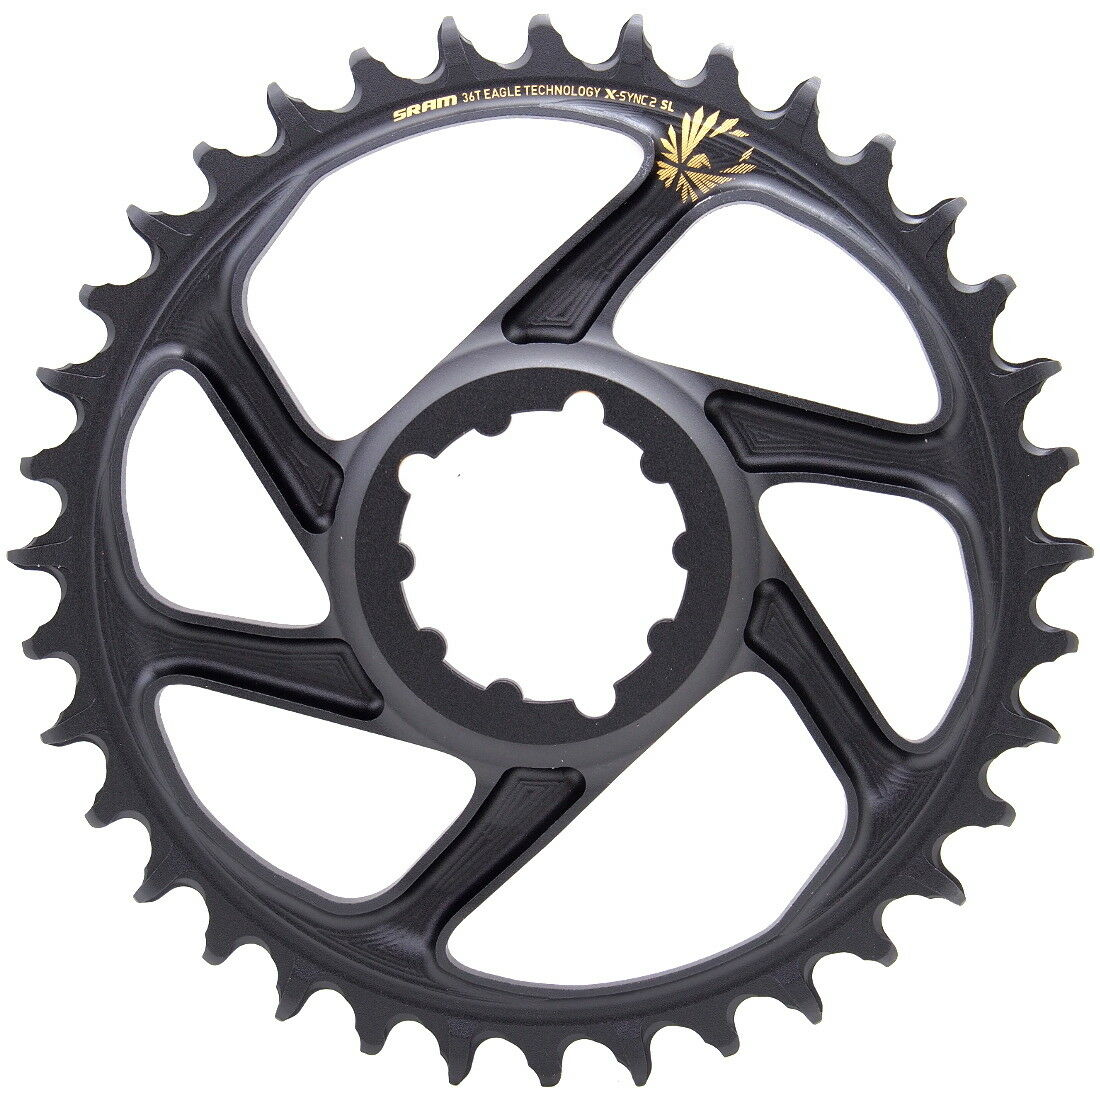 Sram XX1 X01 Eagle  12s Super Light  Direct Mount 36T Chainring 6mm Offset gold  outlet on sale